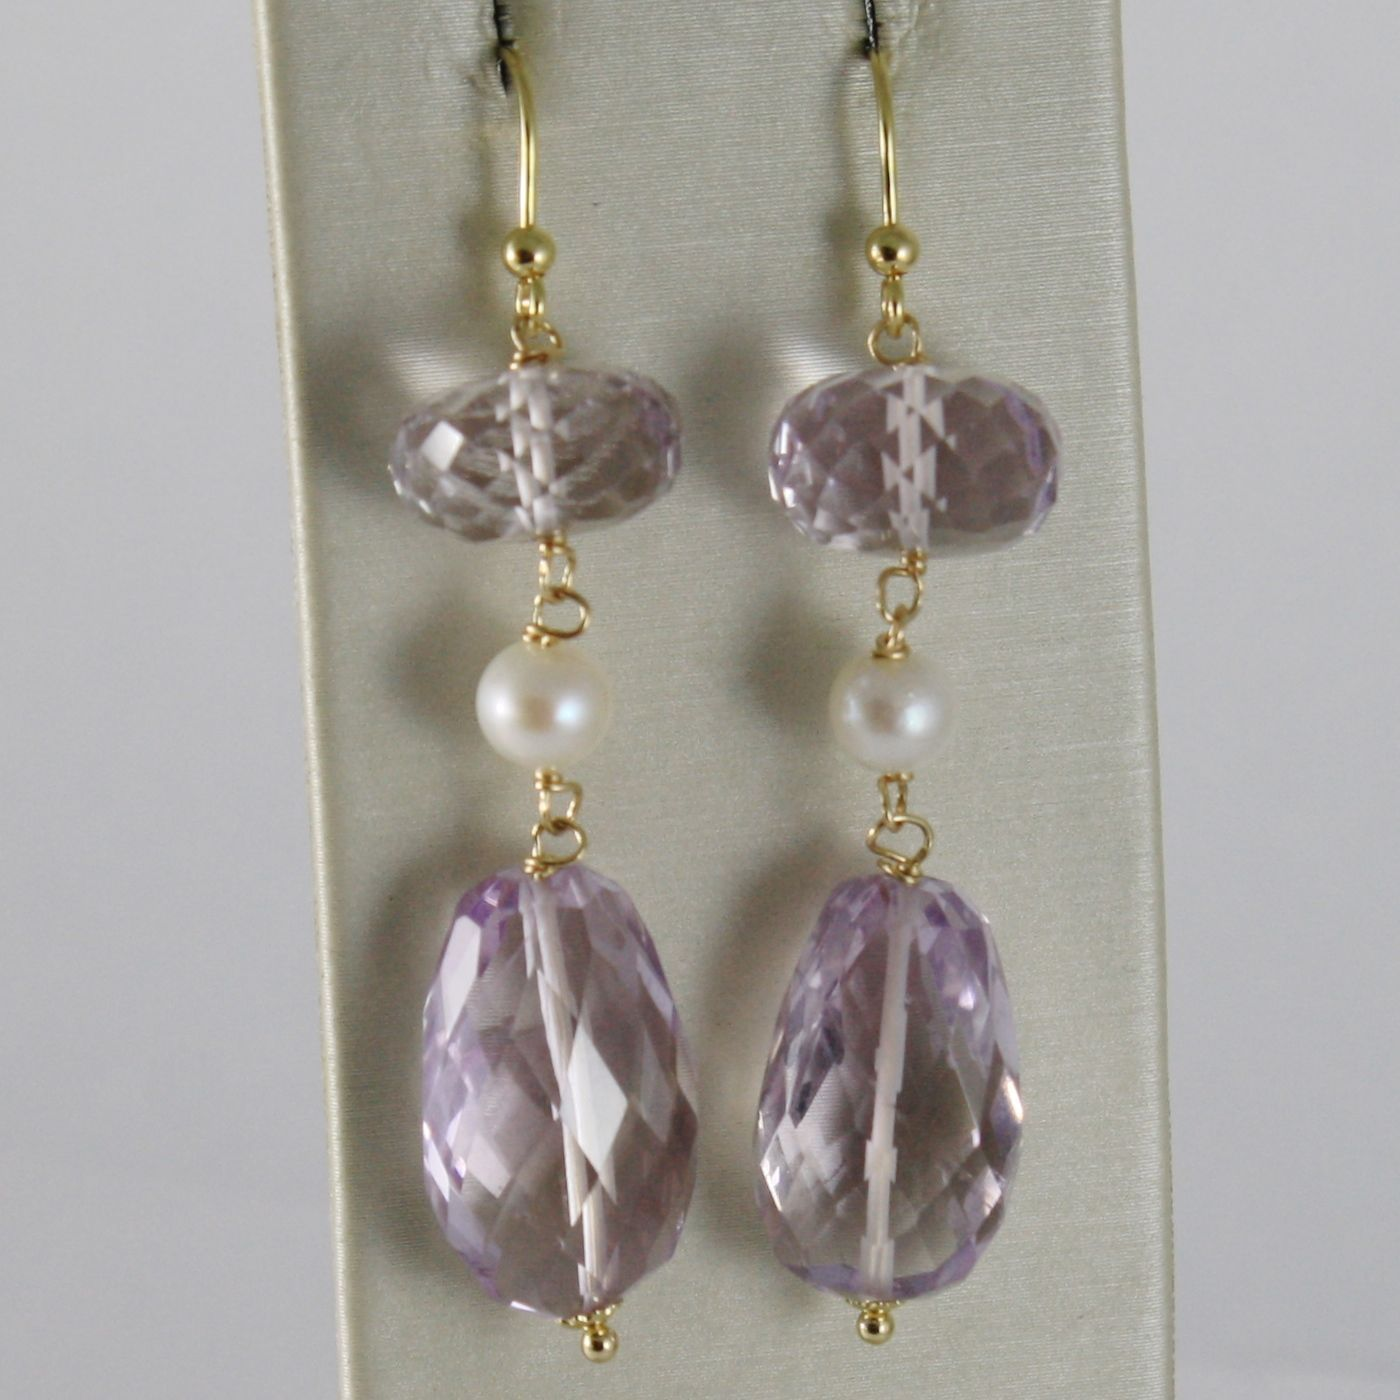 SOLID 18K YELLOW GOLD PENDANT EARRINGS WITH CUSHION PURPLE AMETHYST AND PEARLS